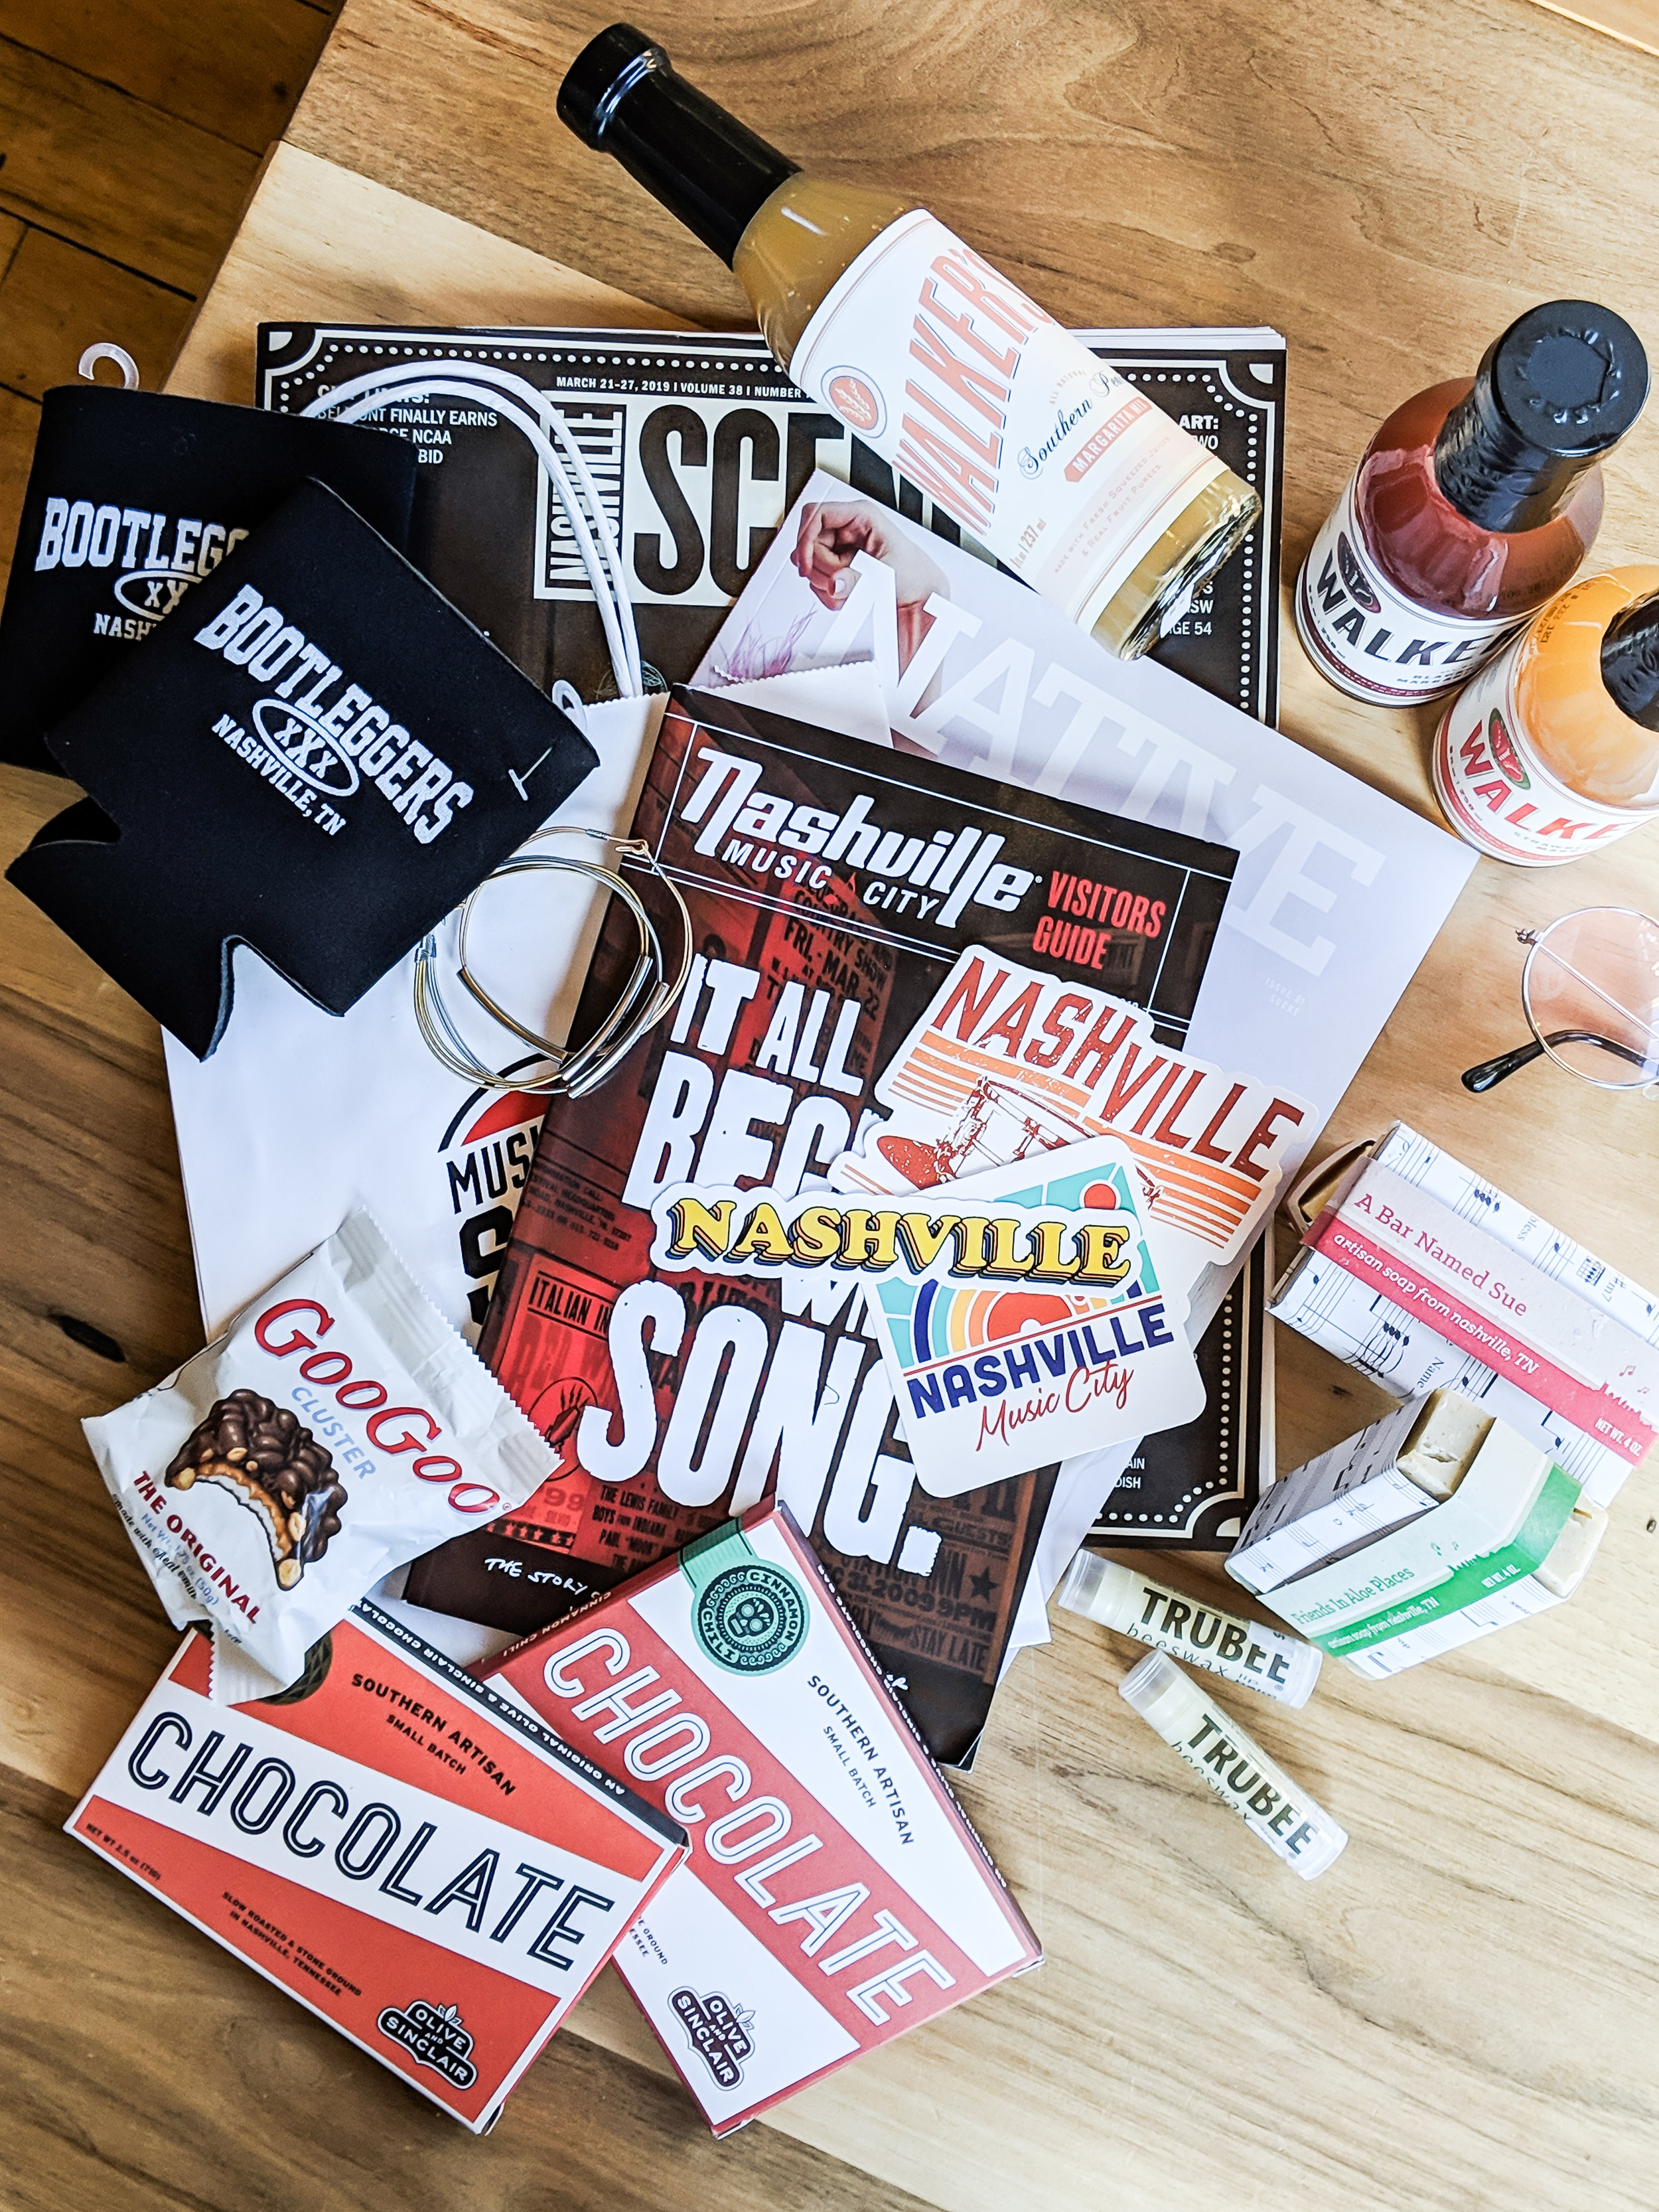 Nashville local products included in our giveaway!